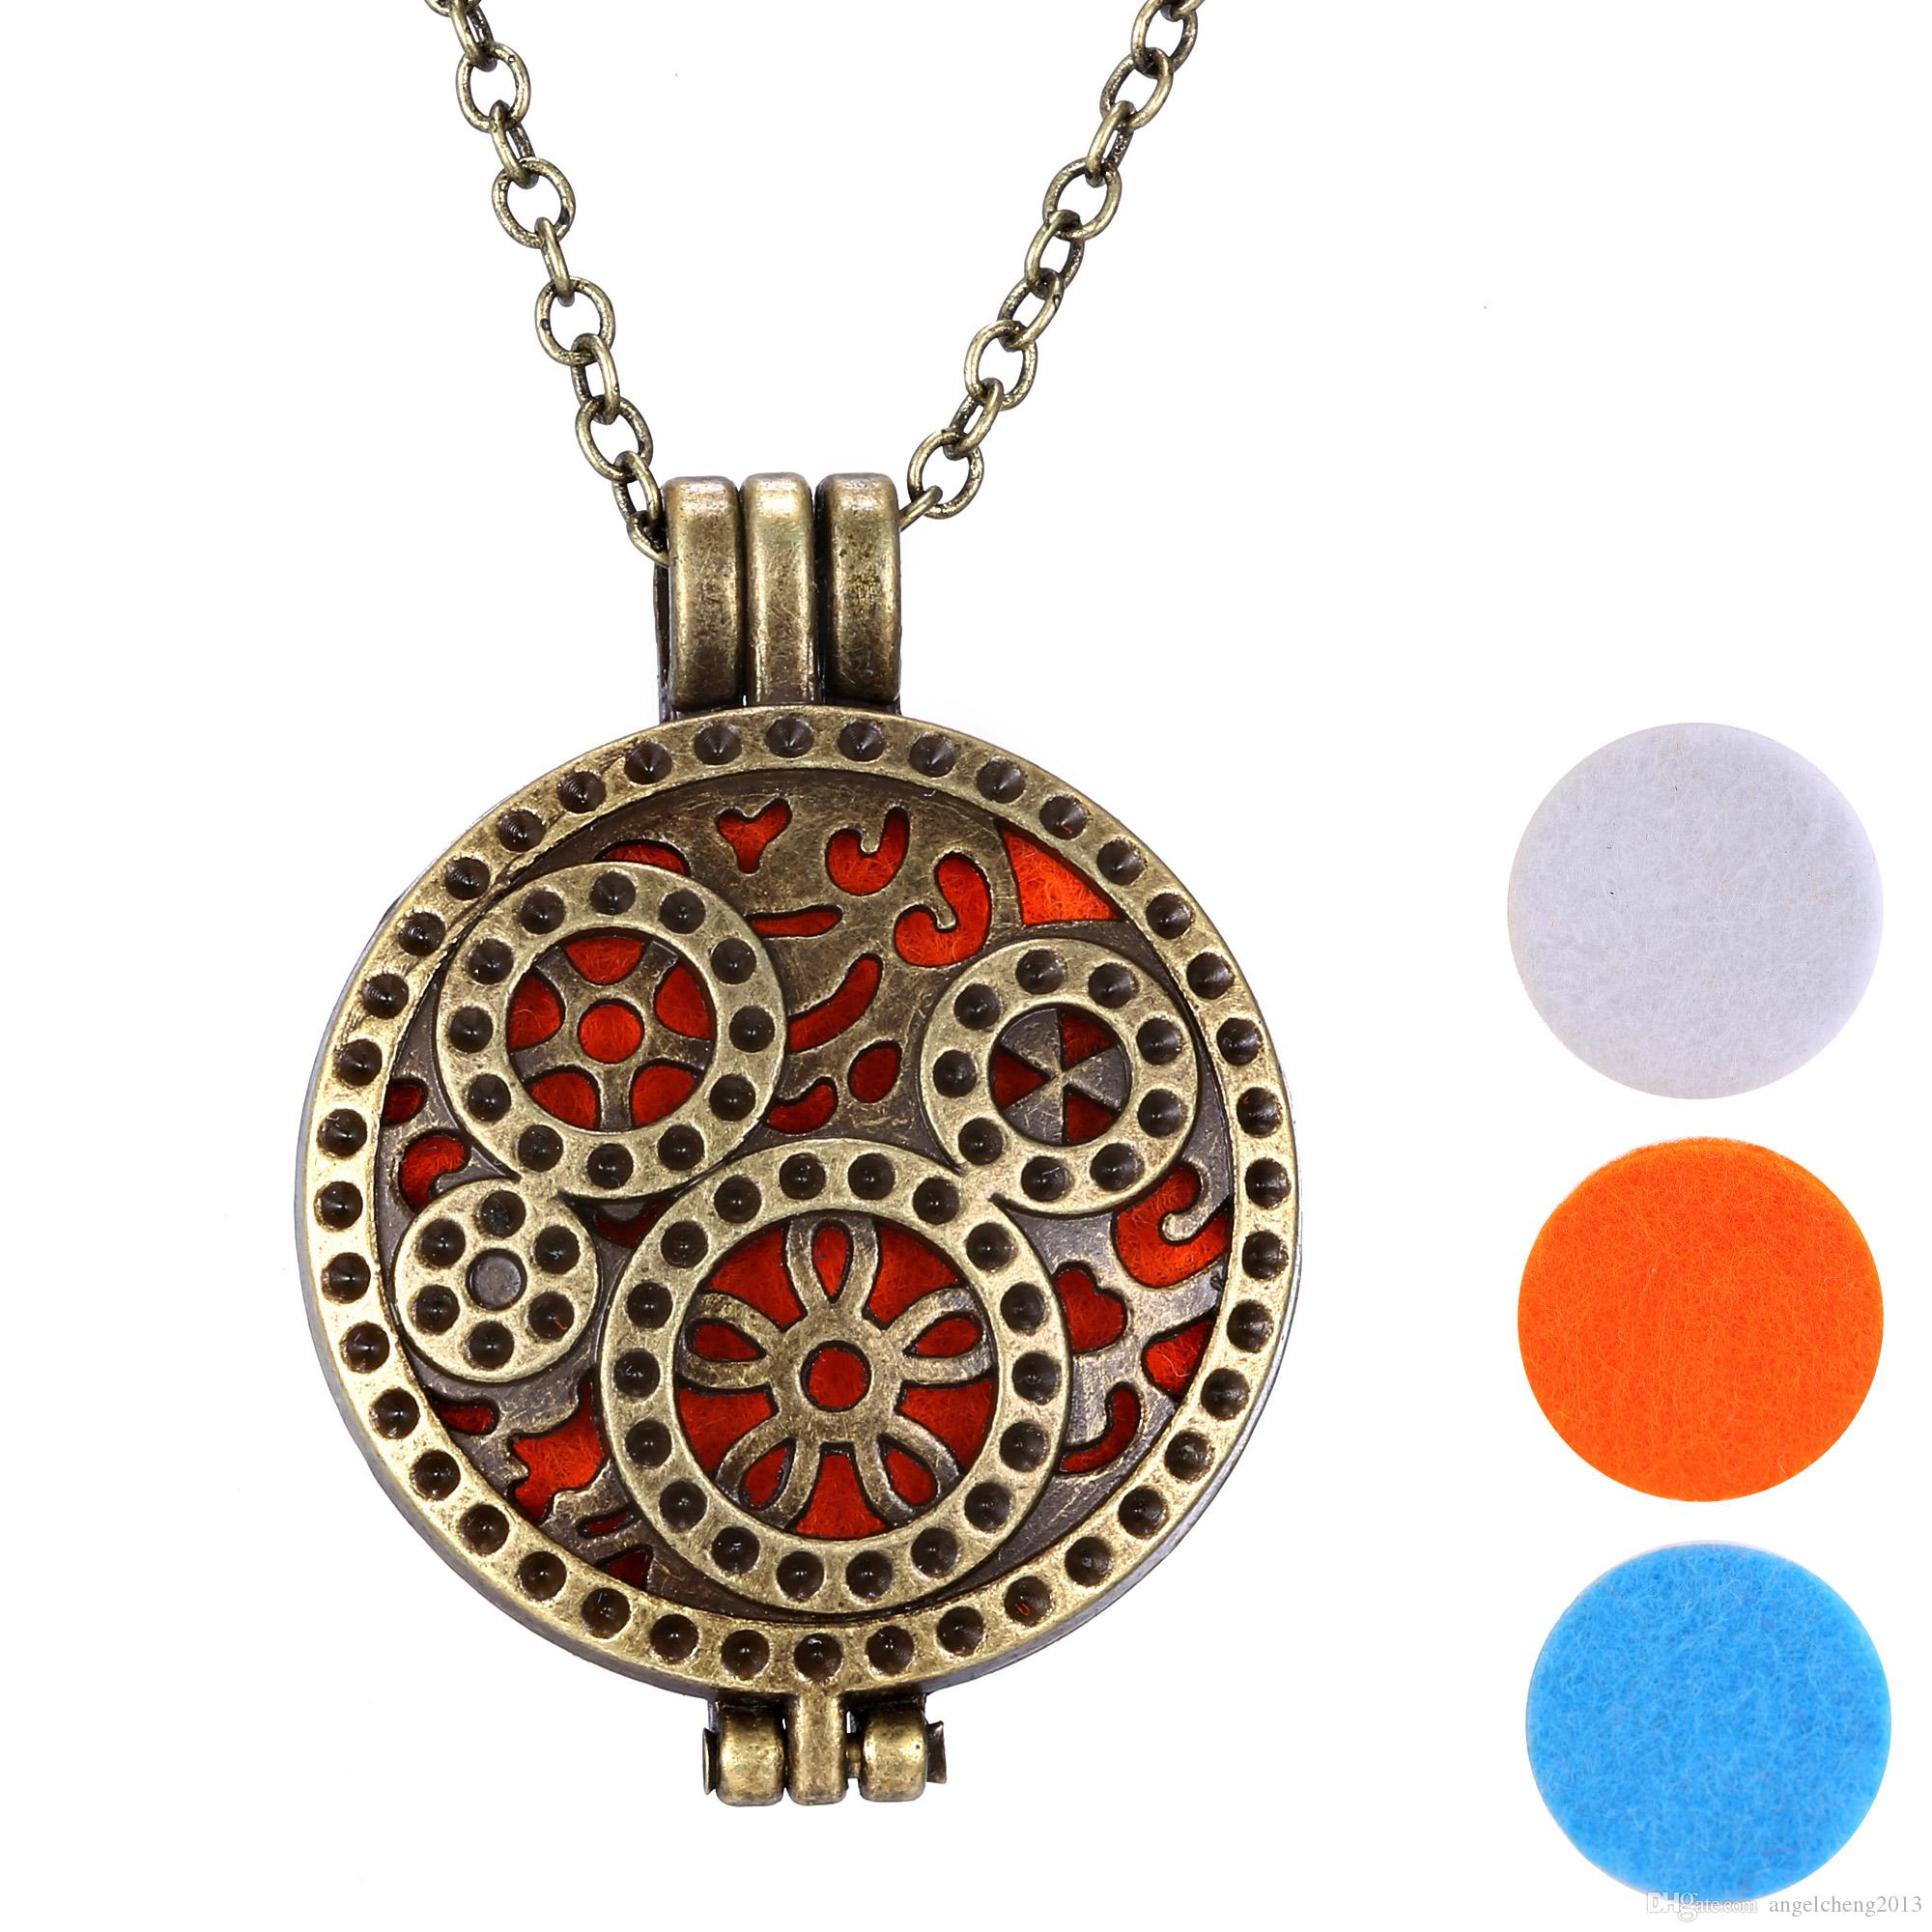 image is necklace ball itm lockets loading cancer pendant harmony perfume oil essential diffuser